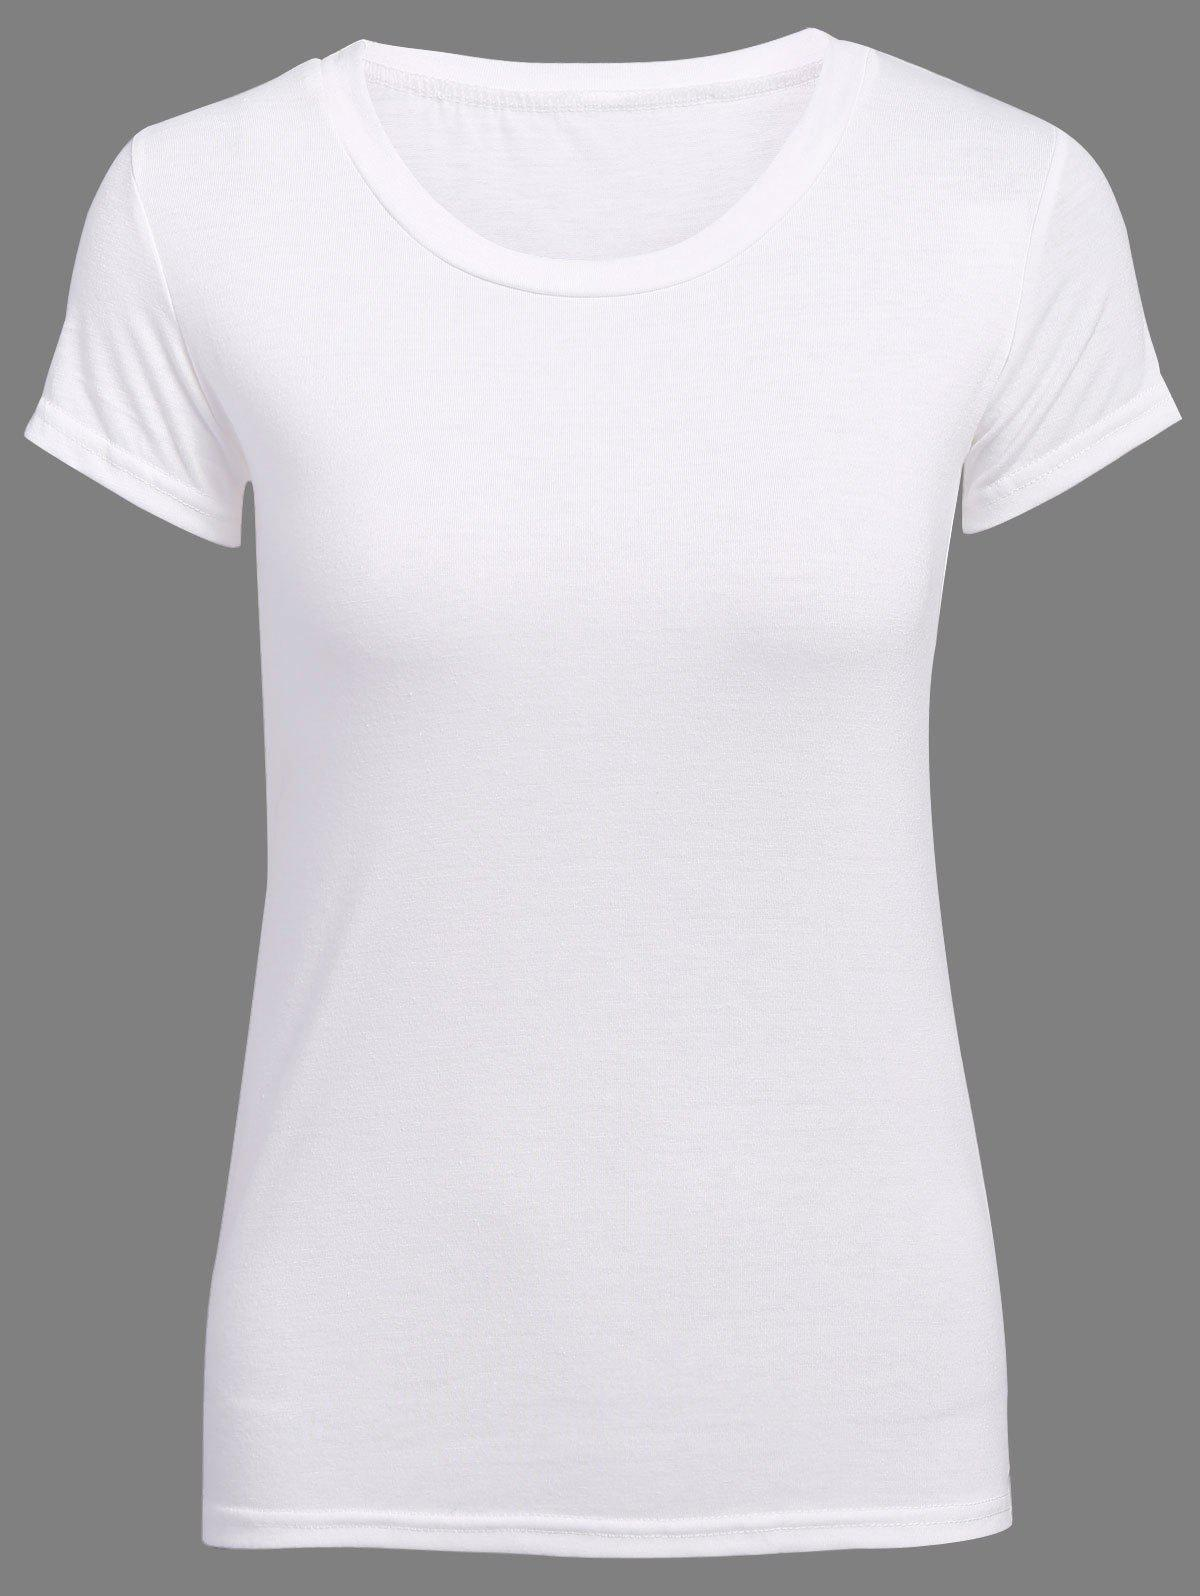 Sweet Candy Solid Color Chic Clipping T-Shirt For Women - WHITE ONE SIZE